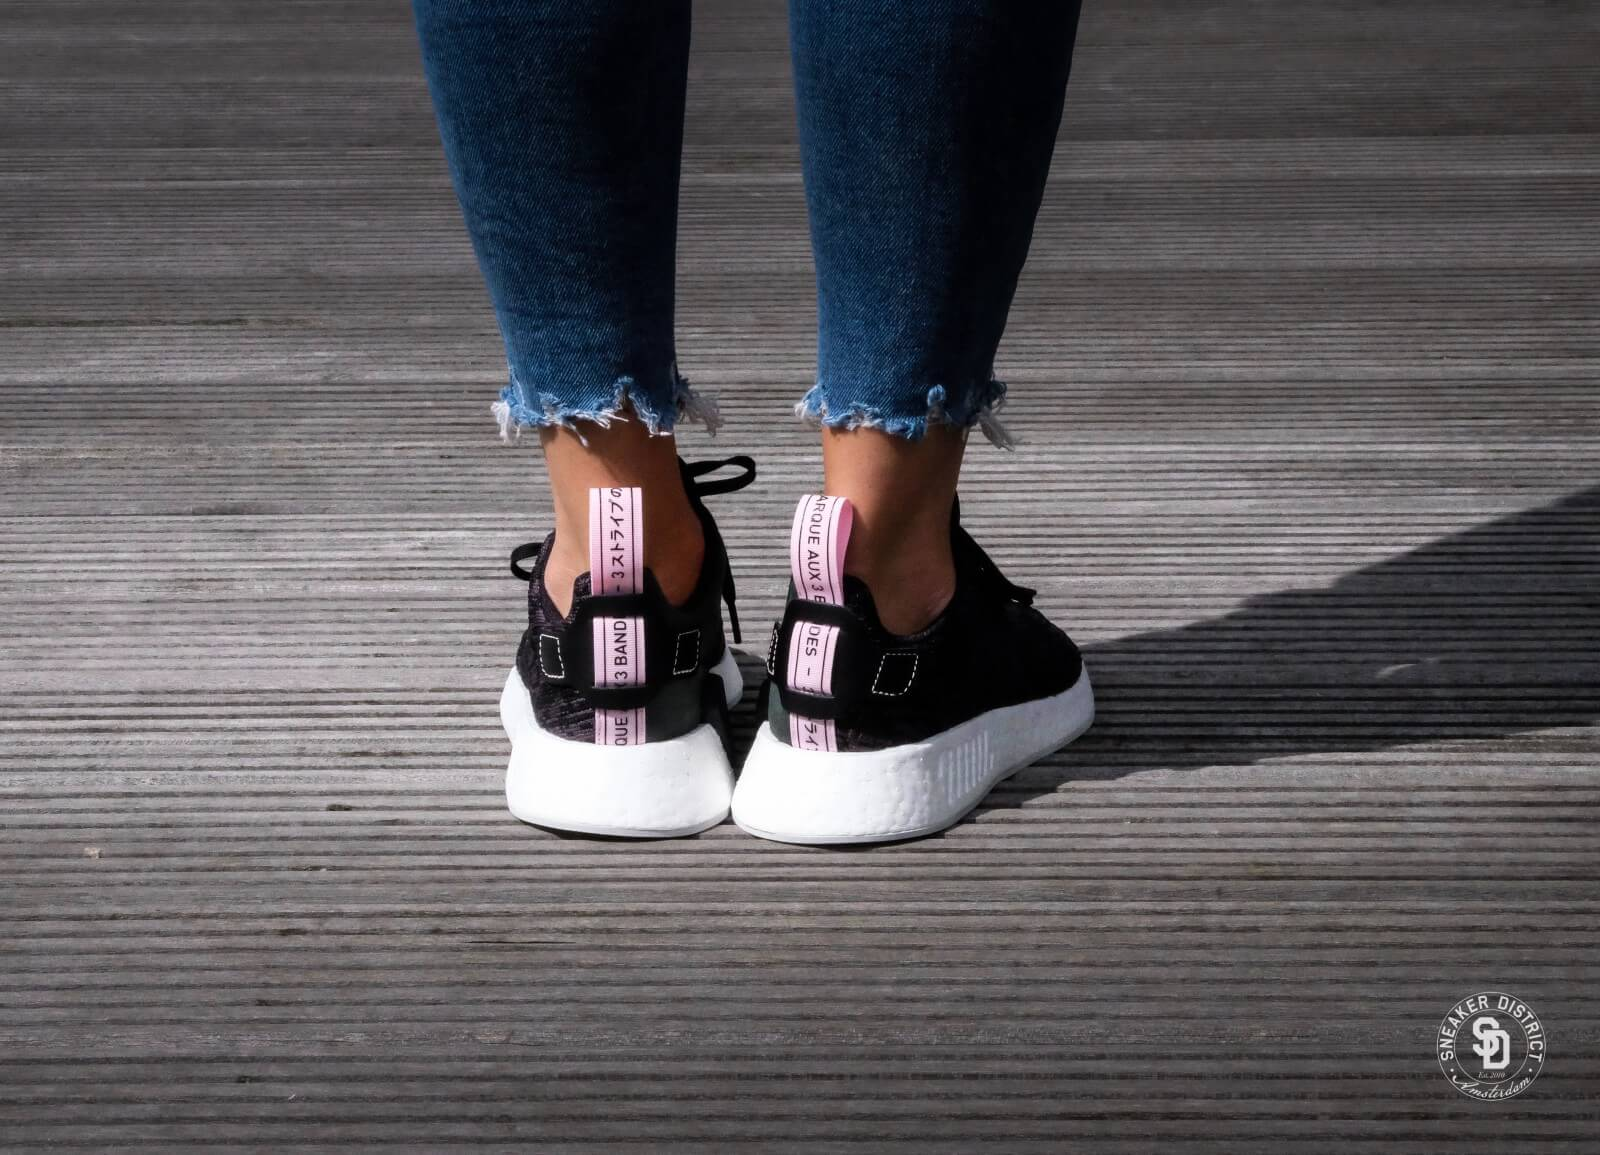 ac9a962cc adidas The NMD R2 Primeknit Sneaker in Core Black and Core Red